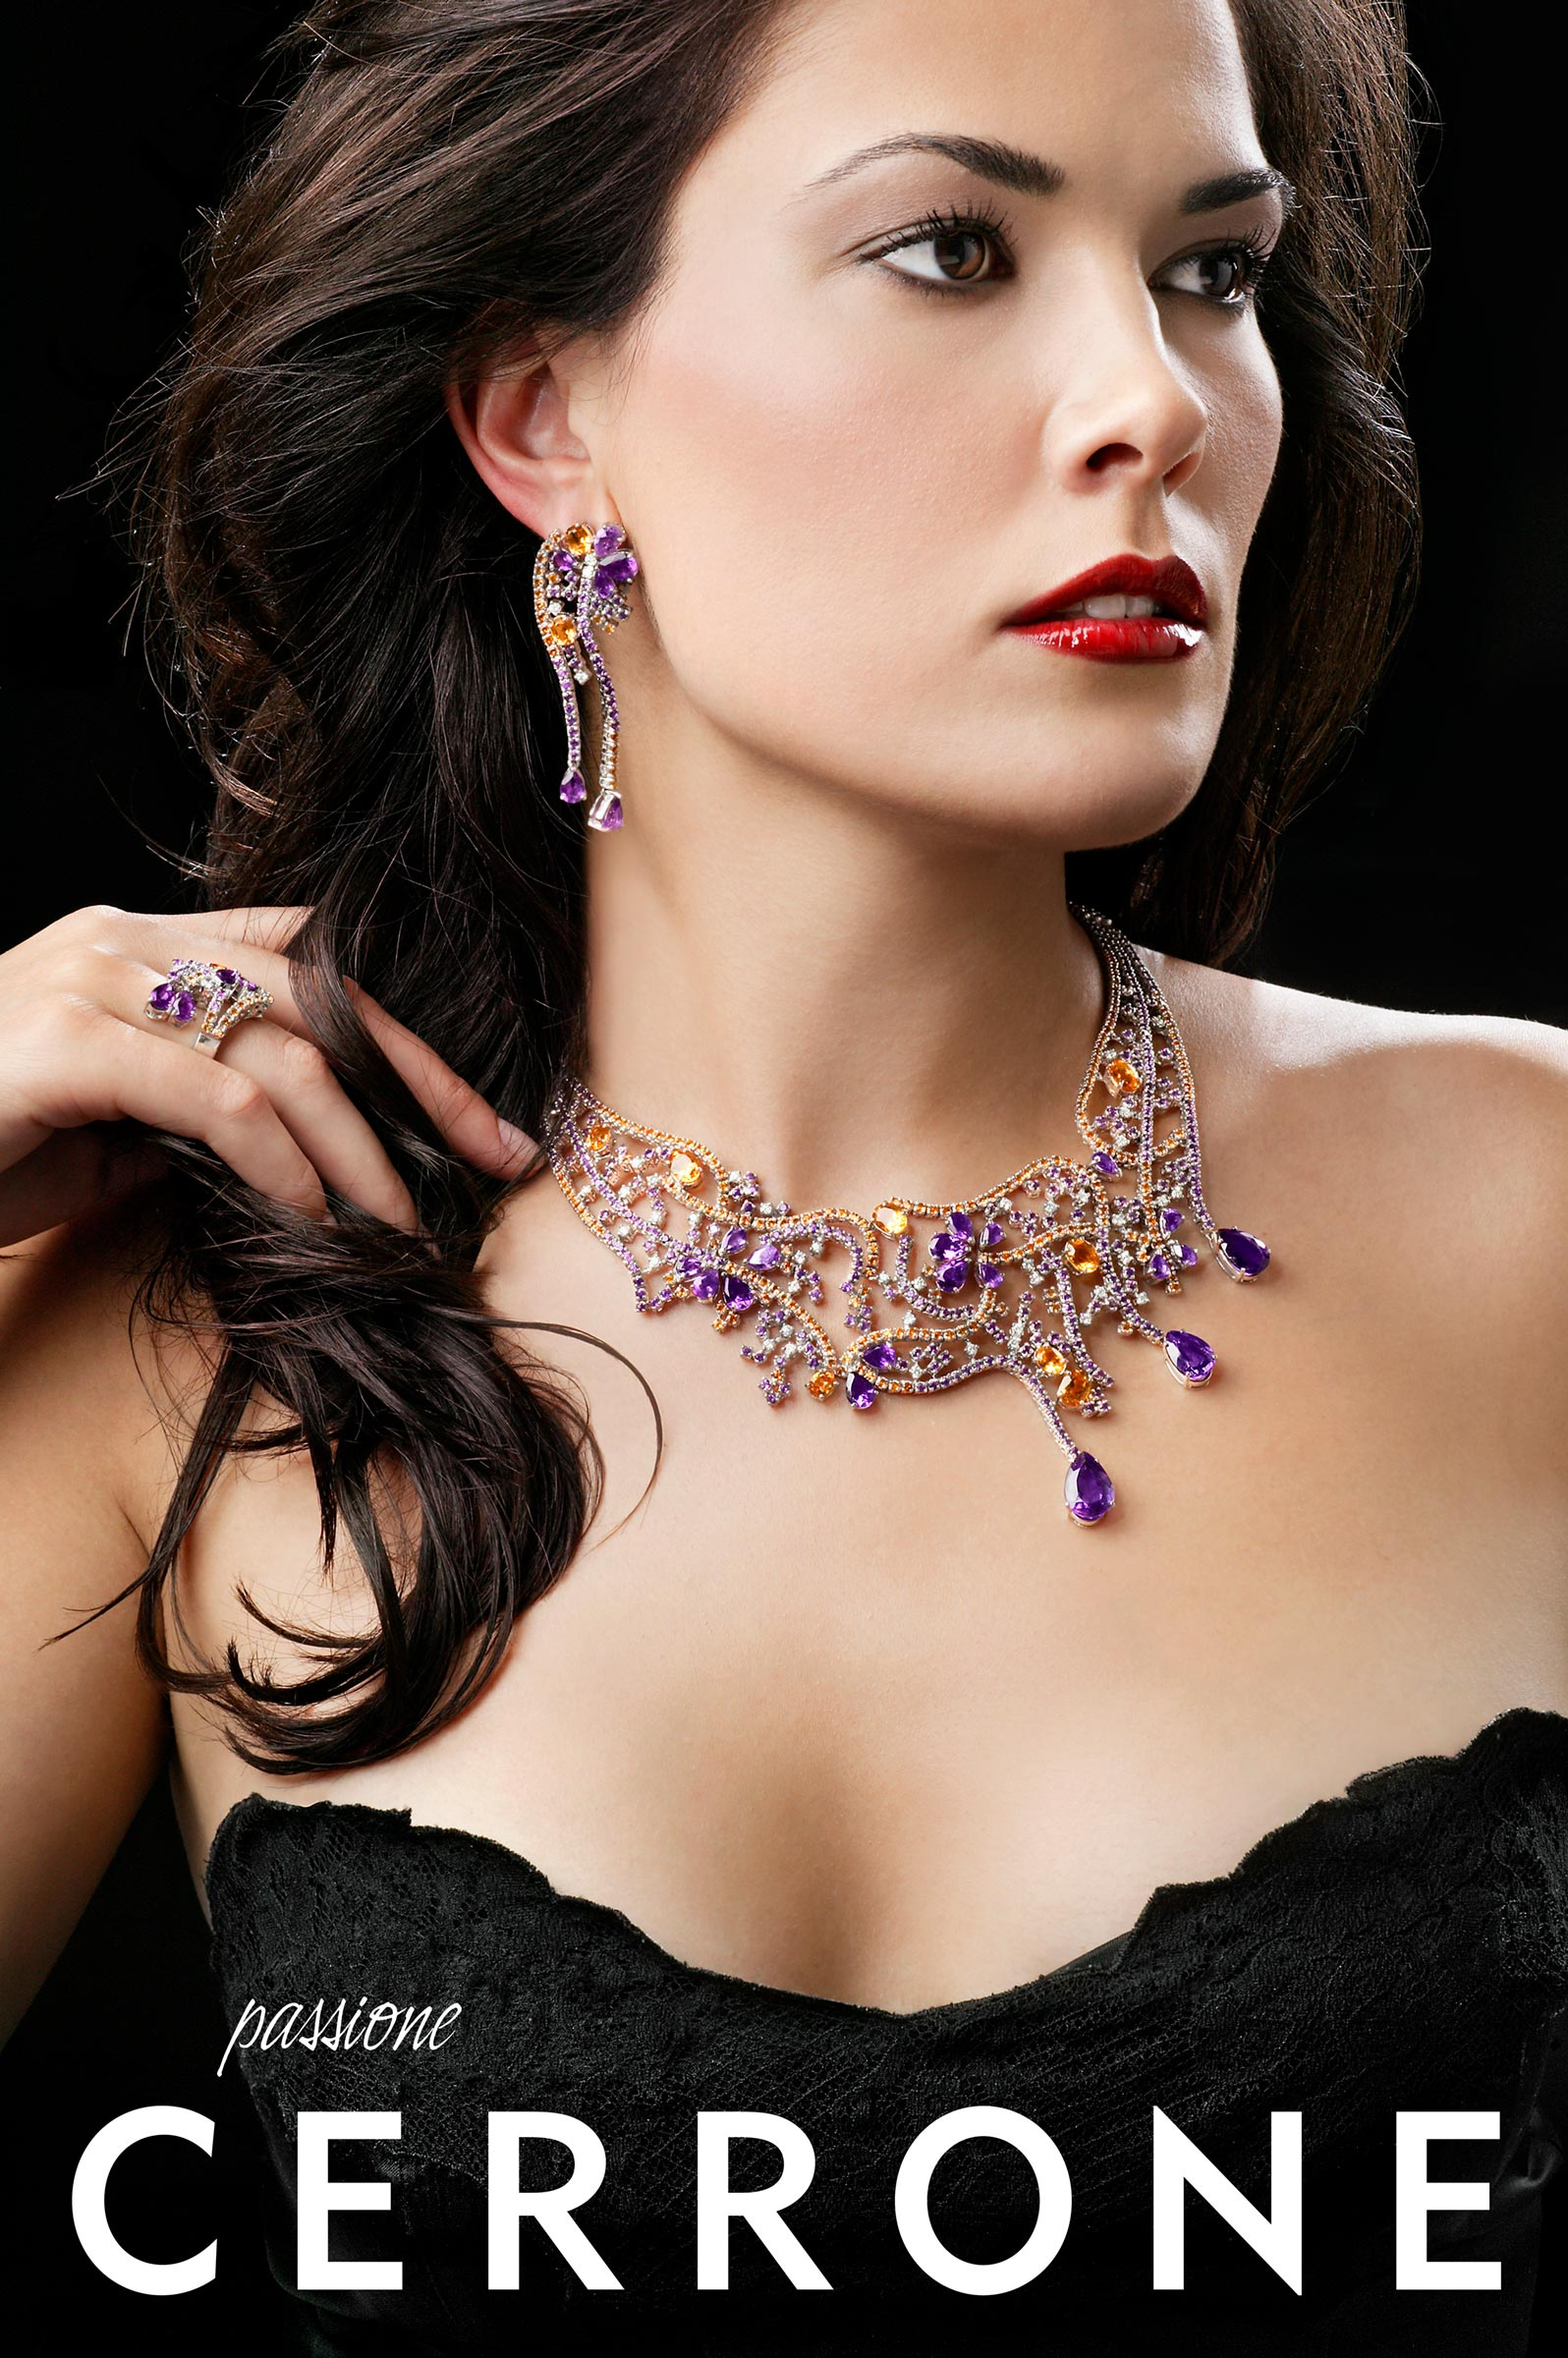 beautiful woman wearing fancy necklace, earrings and ring